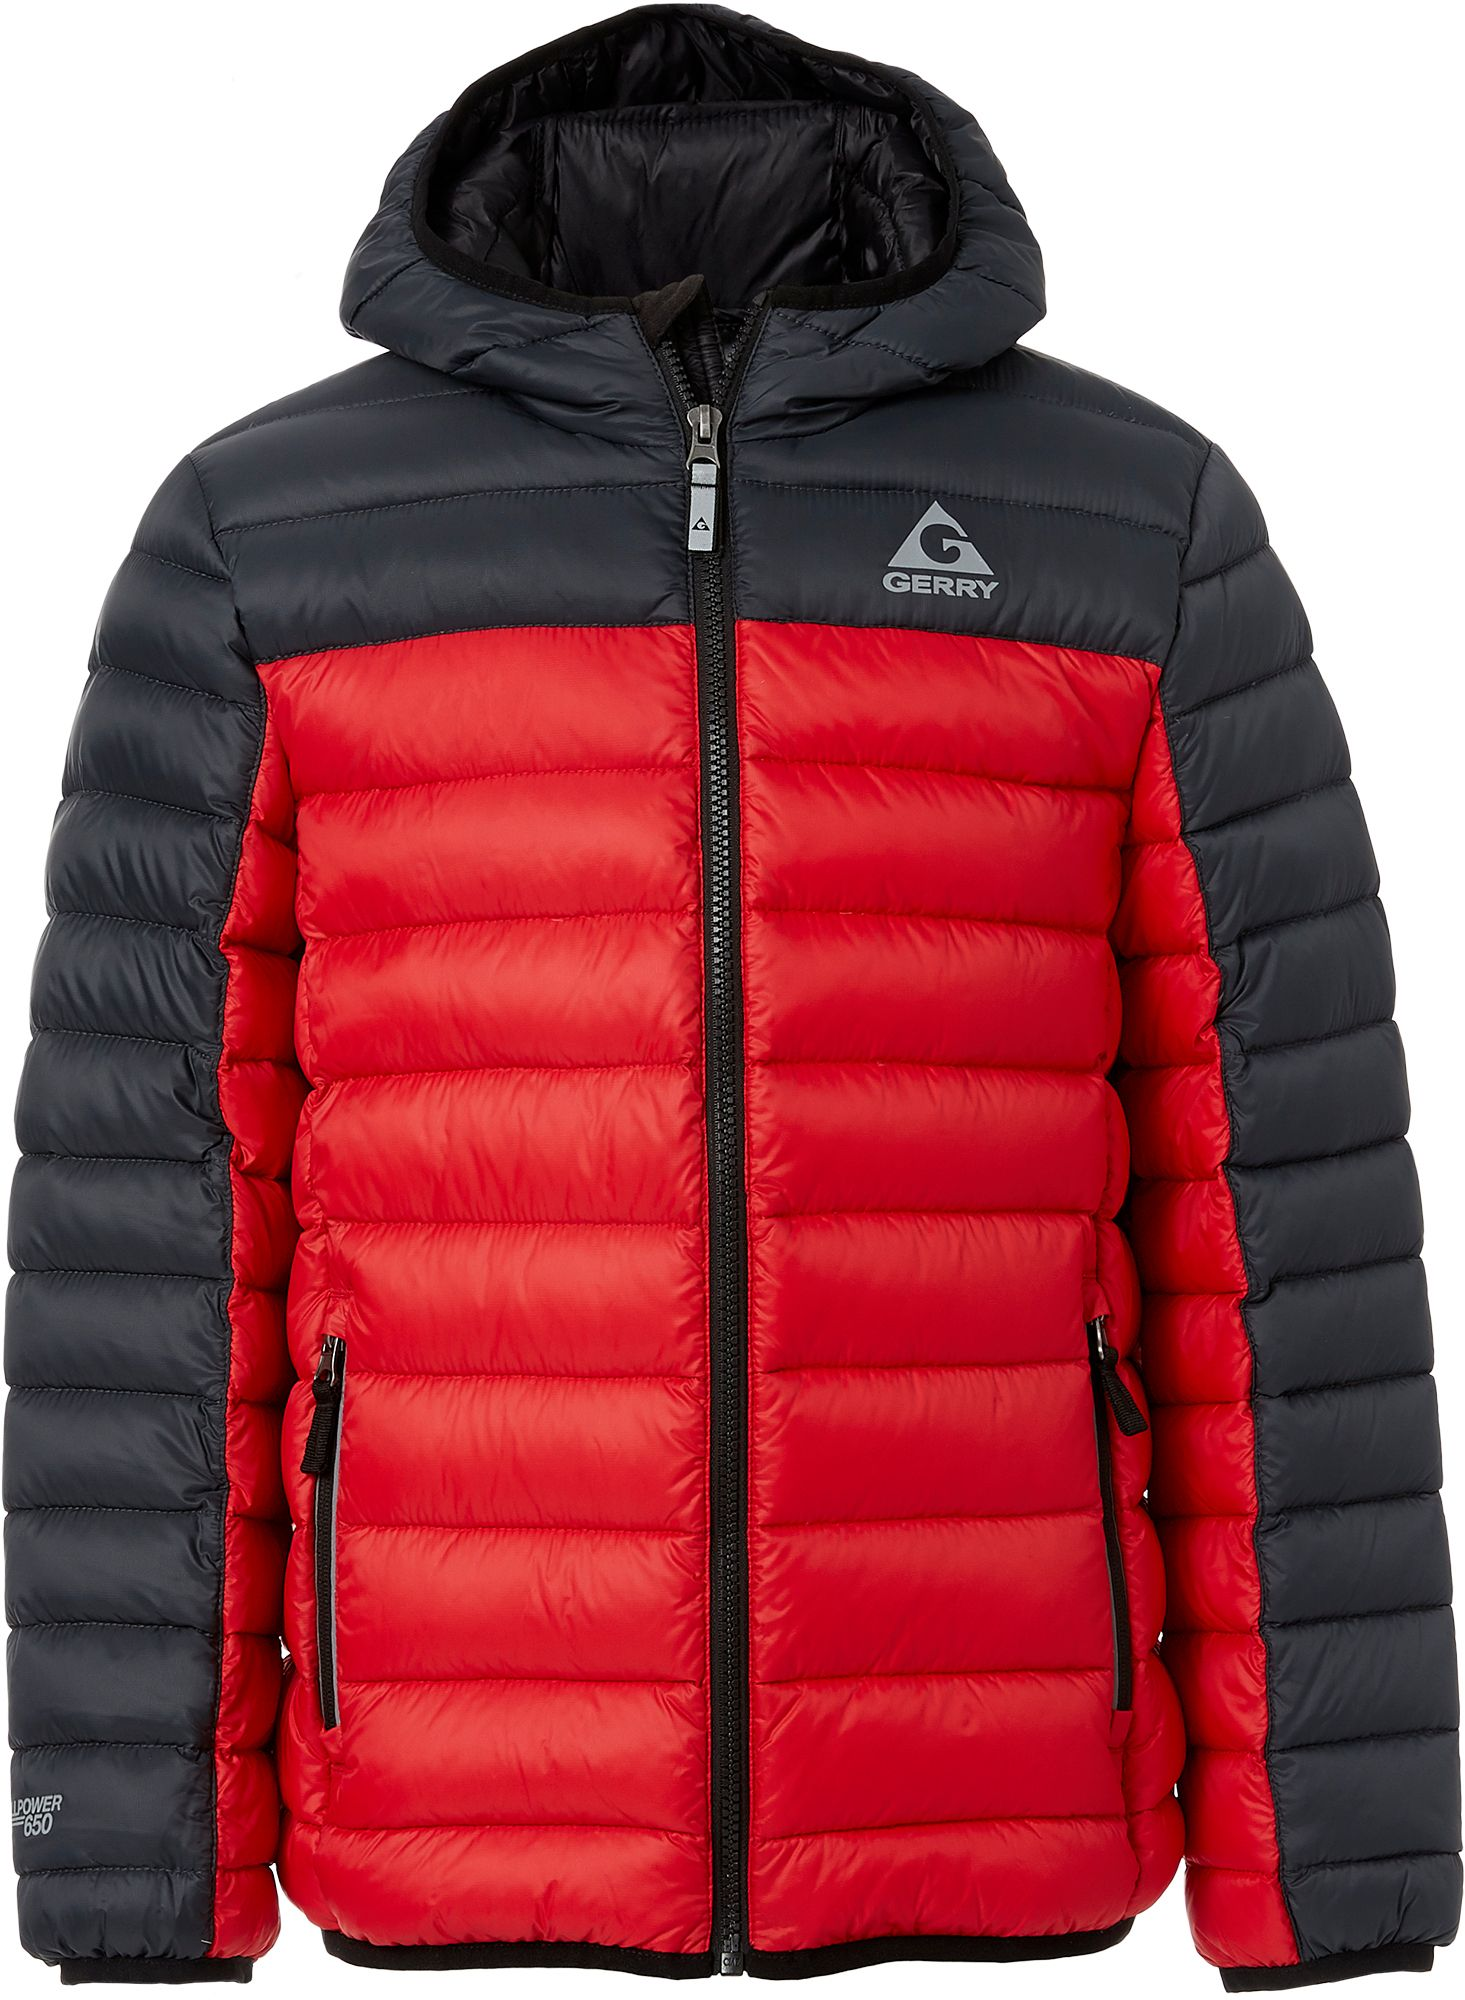 Packable down ski jacket